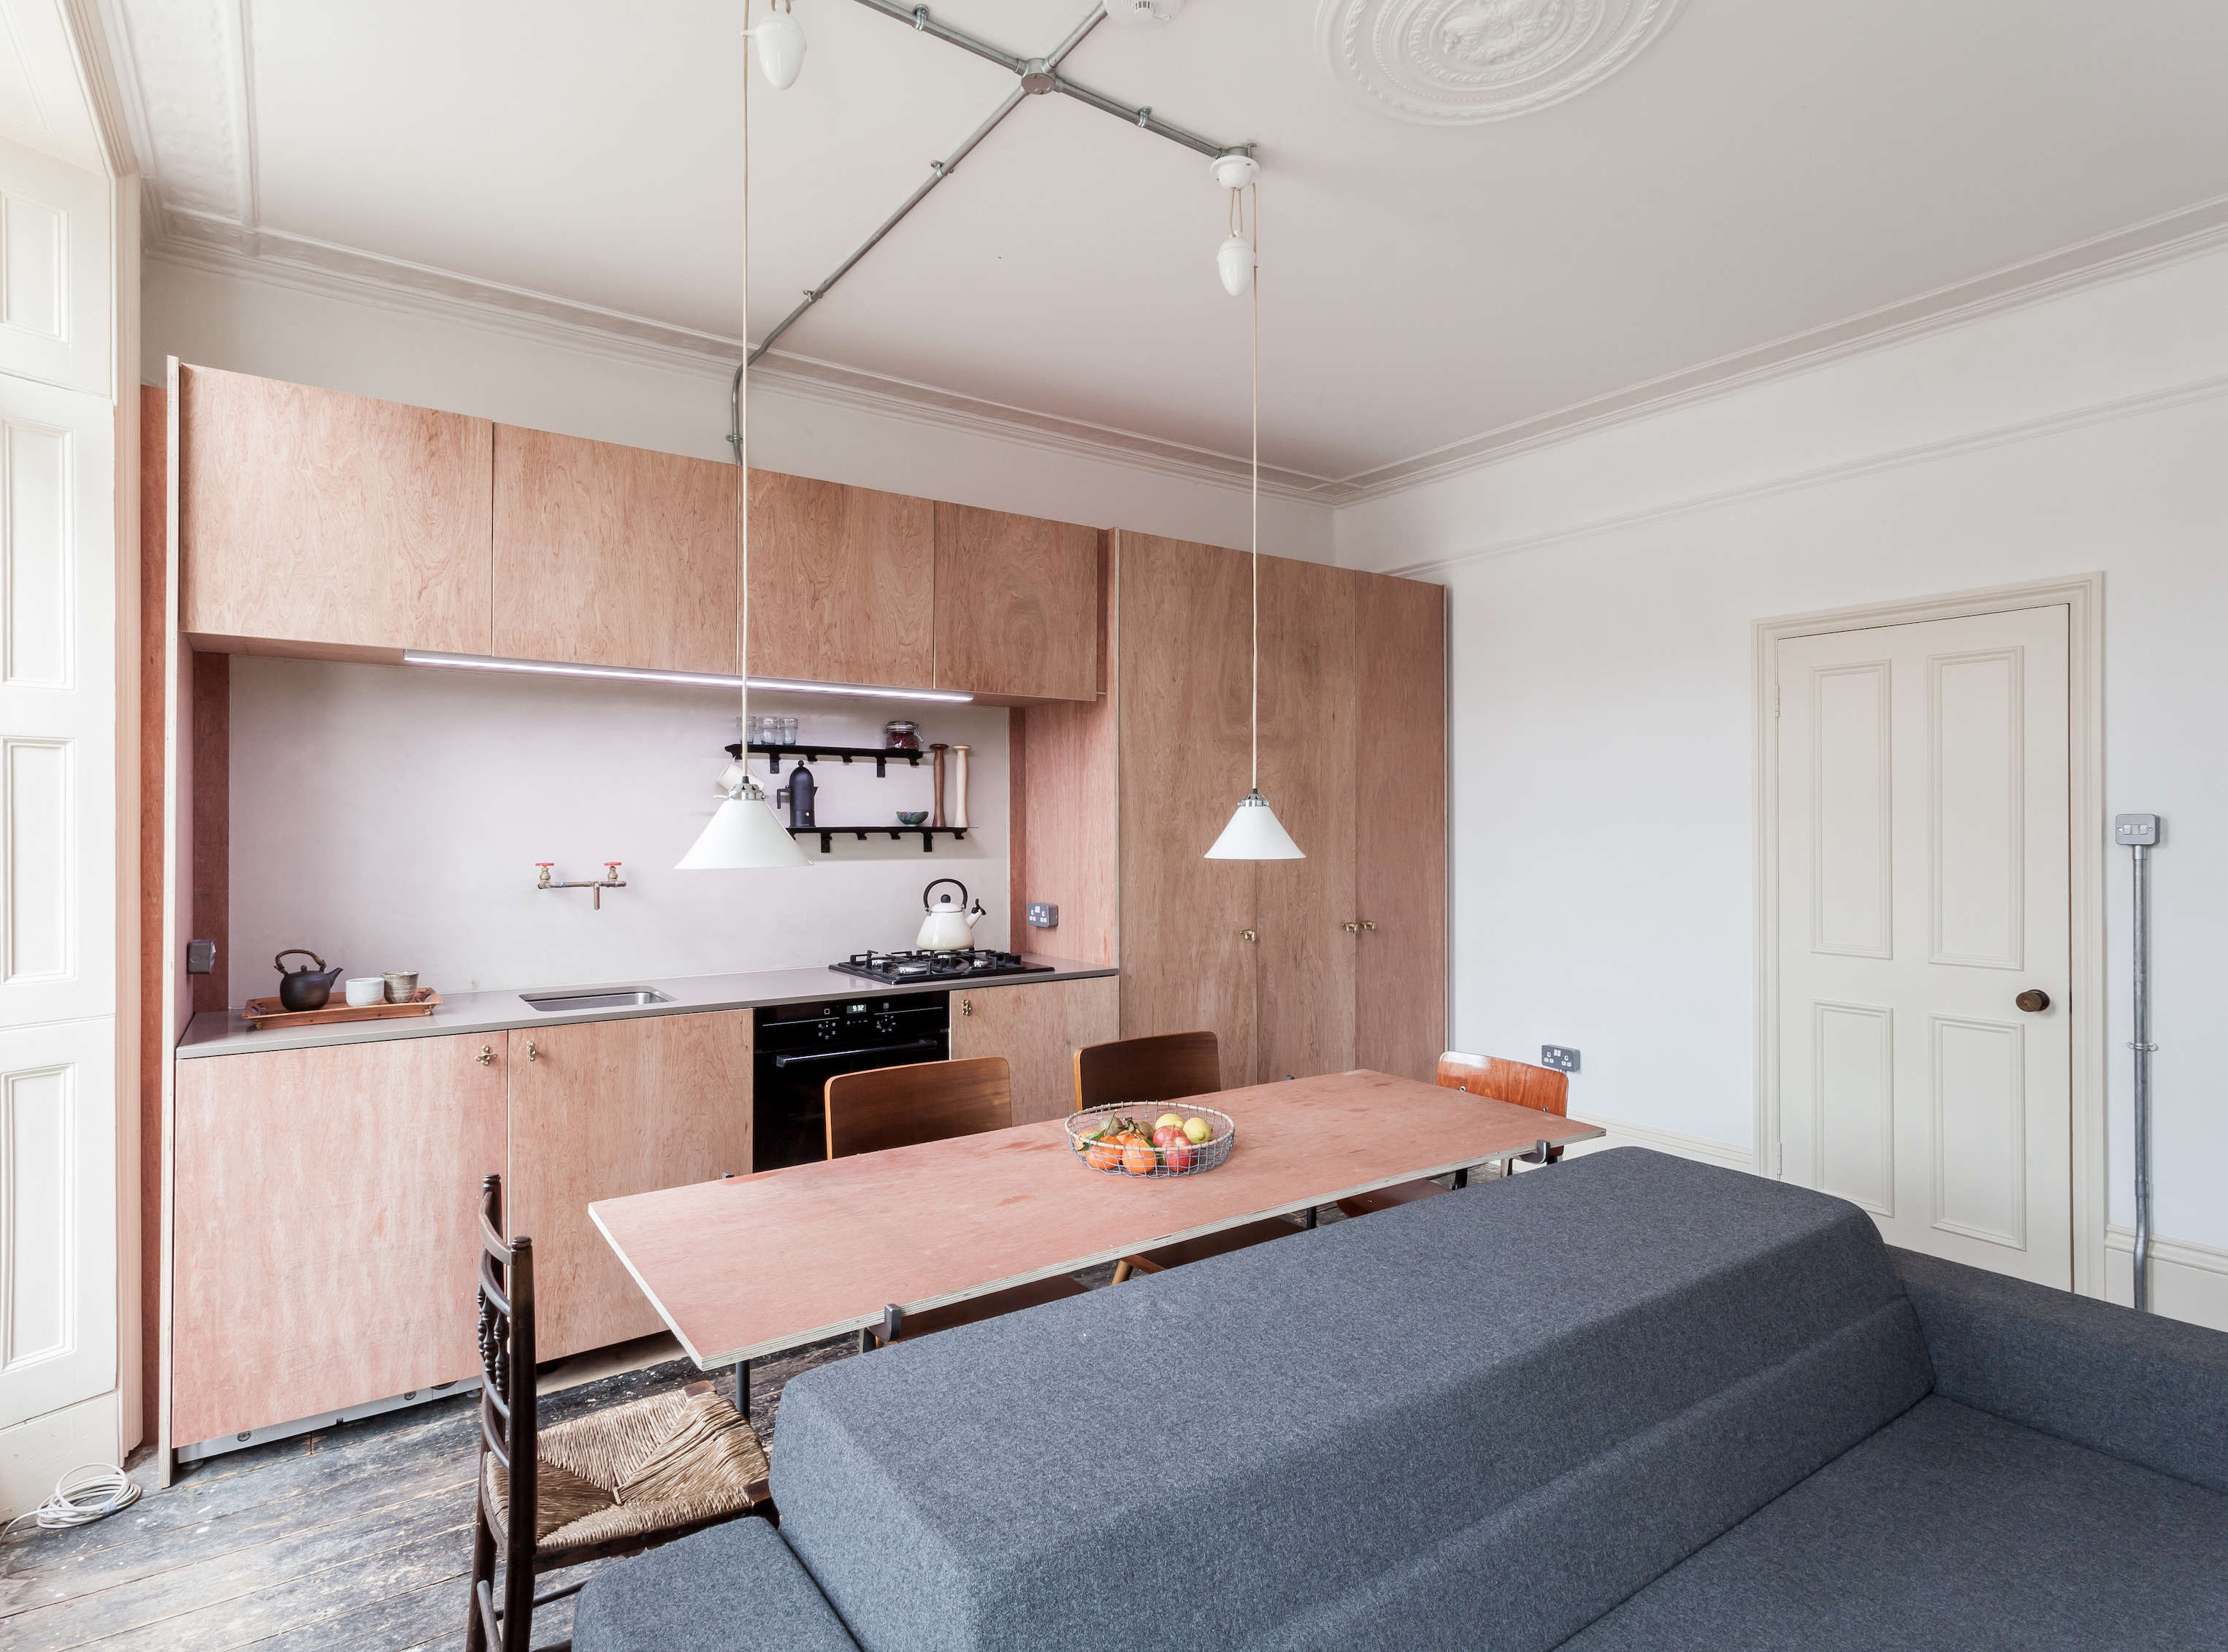 plywood cabinets in a small kitchen open to dining and living area, designed by 12